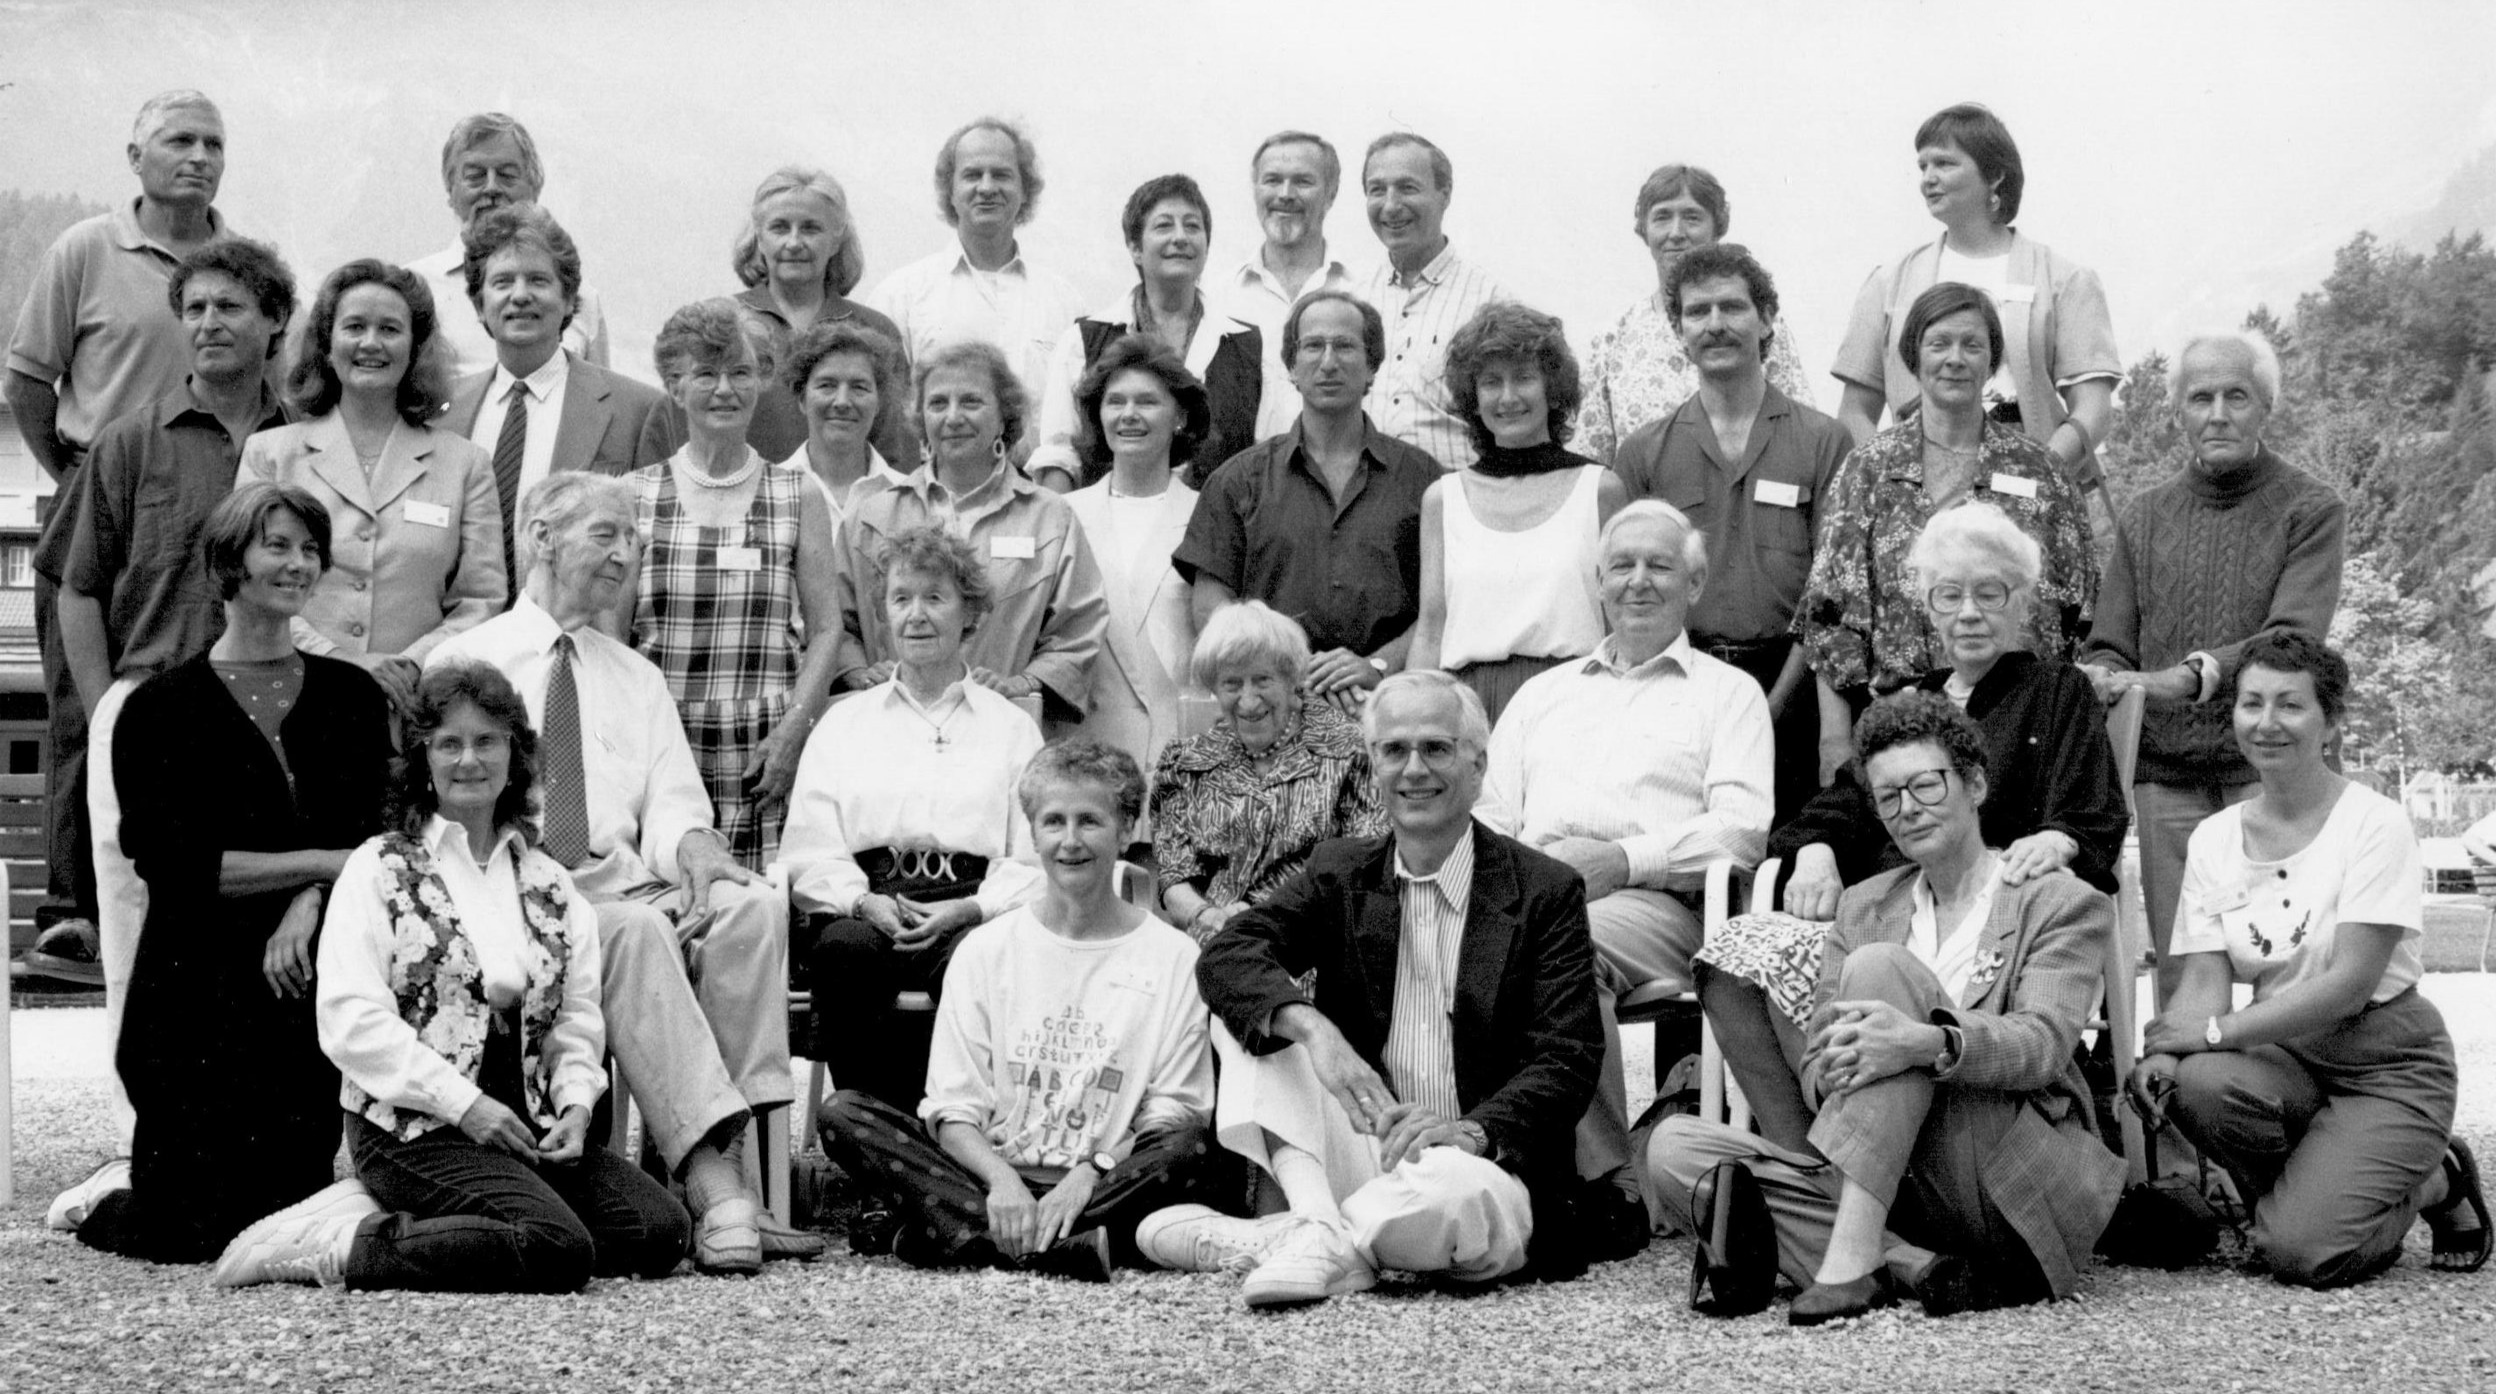 Alexander Teachers at the Third Annual International Alexander Congress in Engelberg, Switzerland. ACAT Founding Member Deborah Caplan, PT is far left front row. Photo ©1991 Holly Sweeney, used with permission.